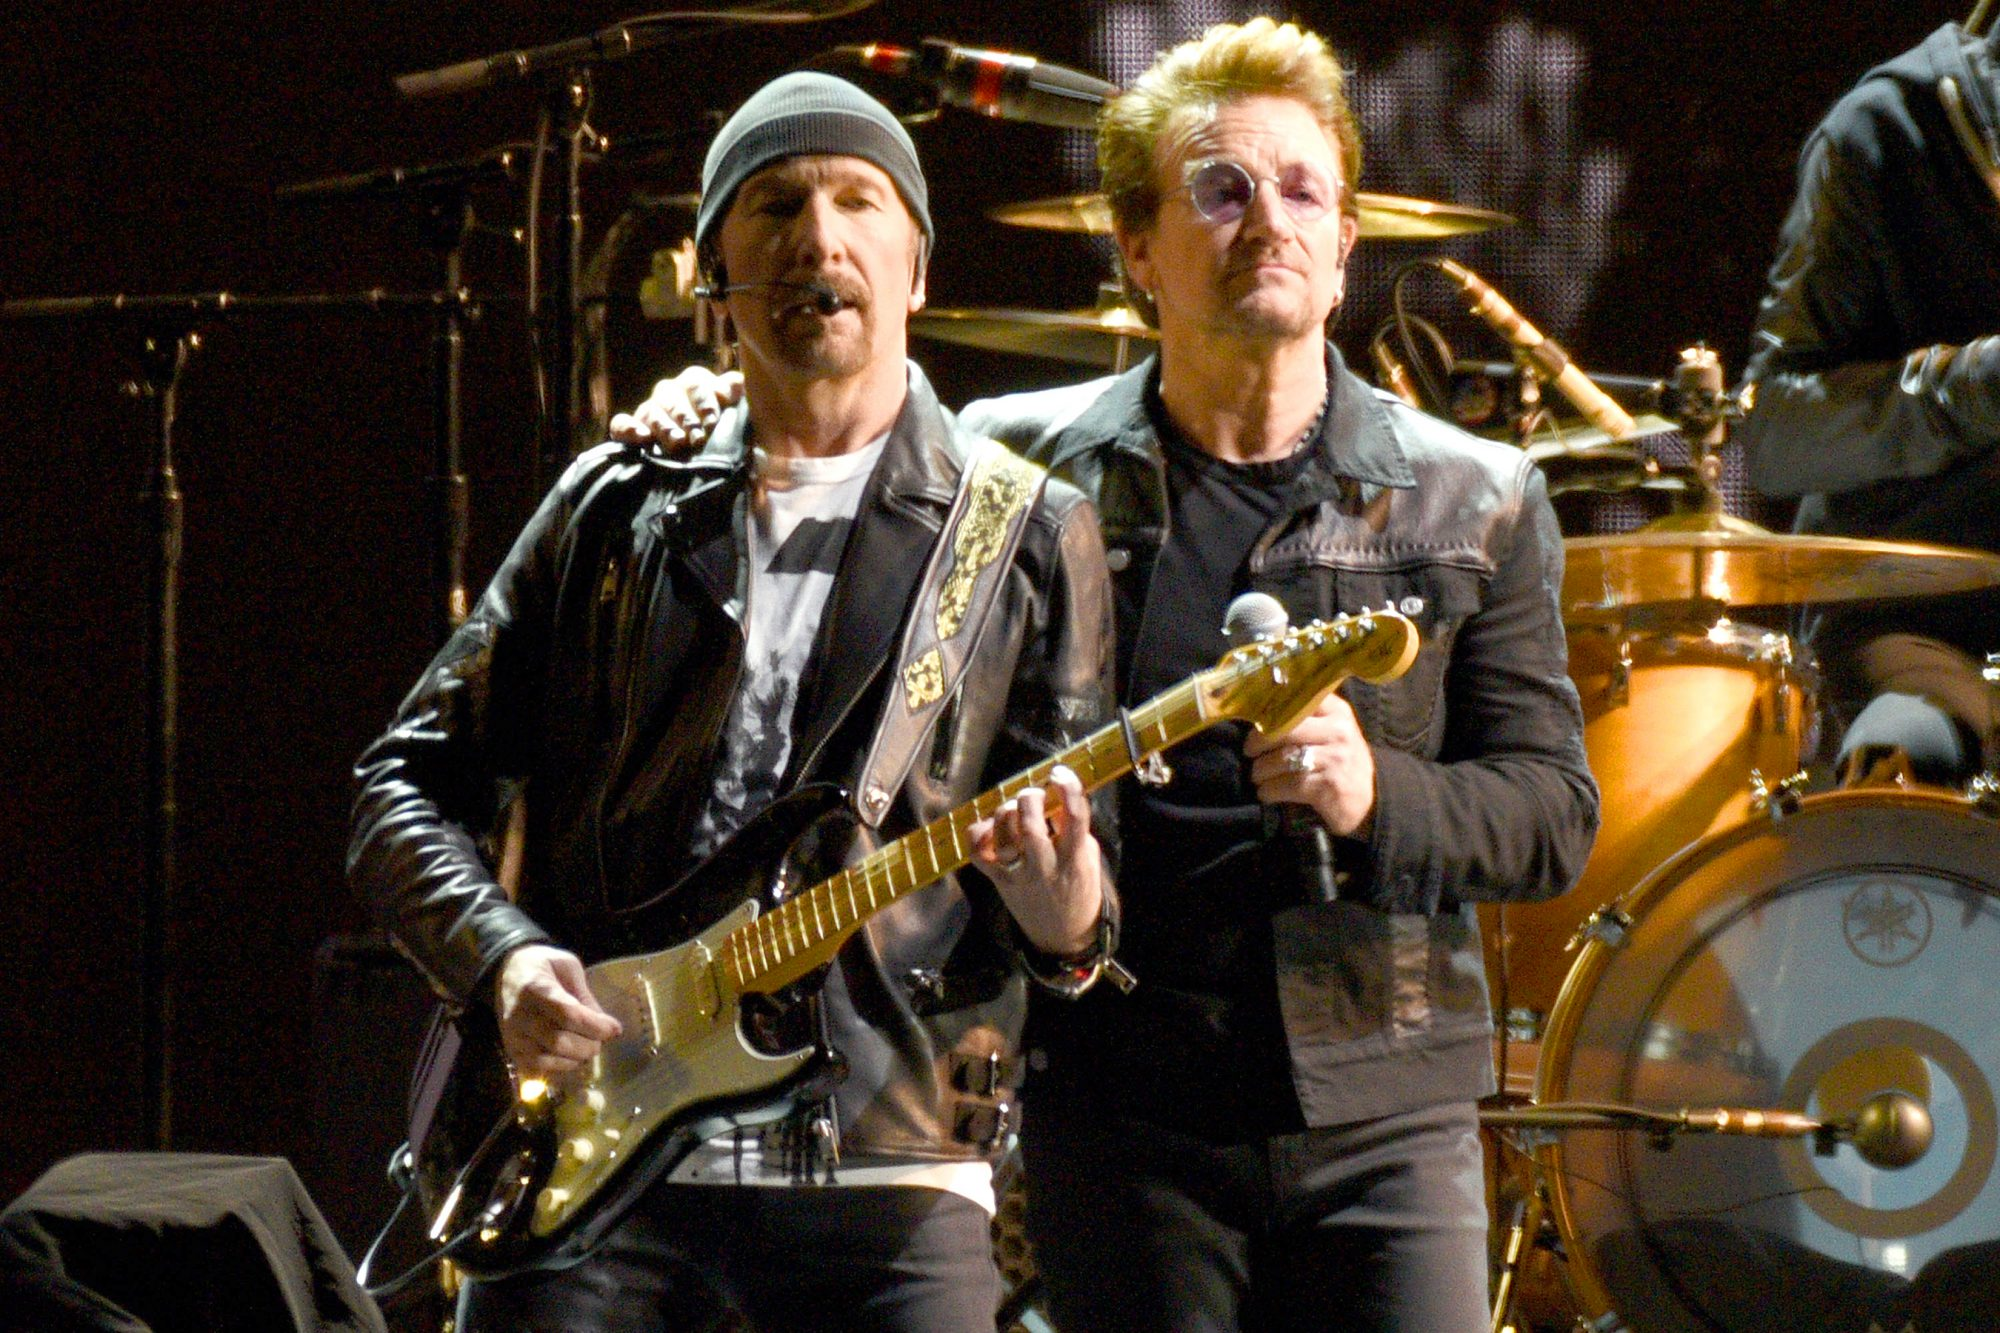 U2 Performs At Levi's Stadium